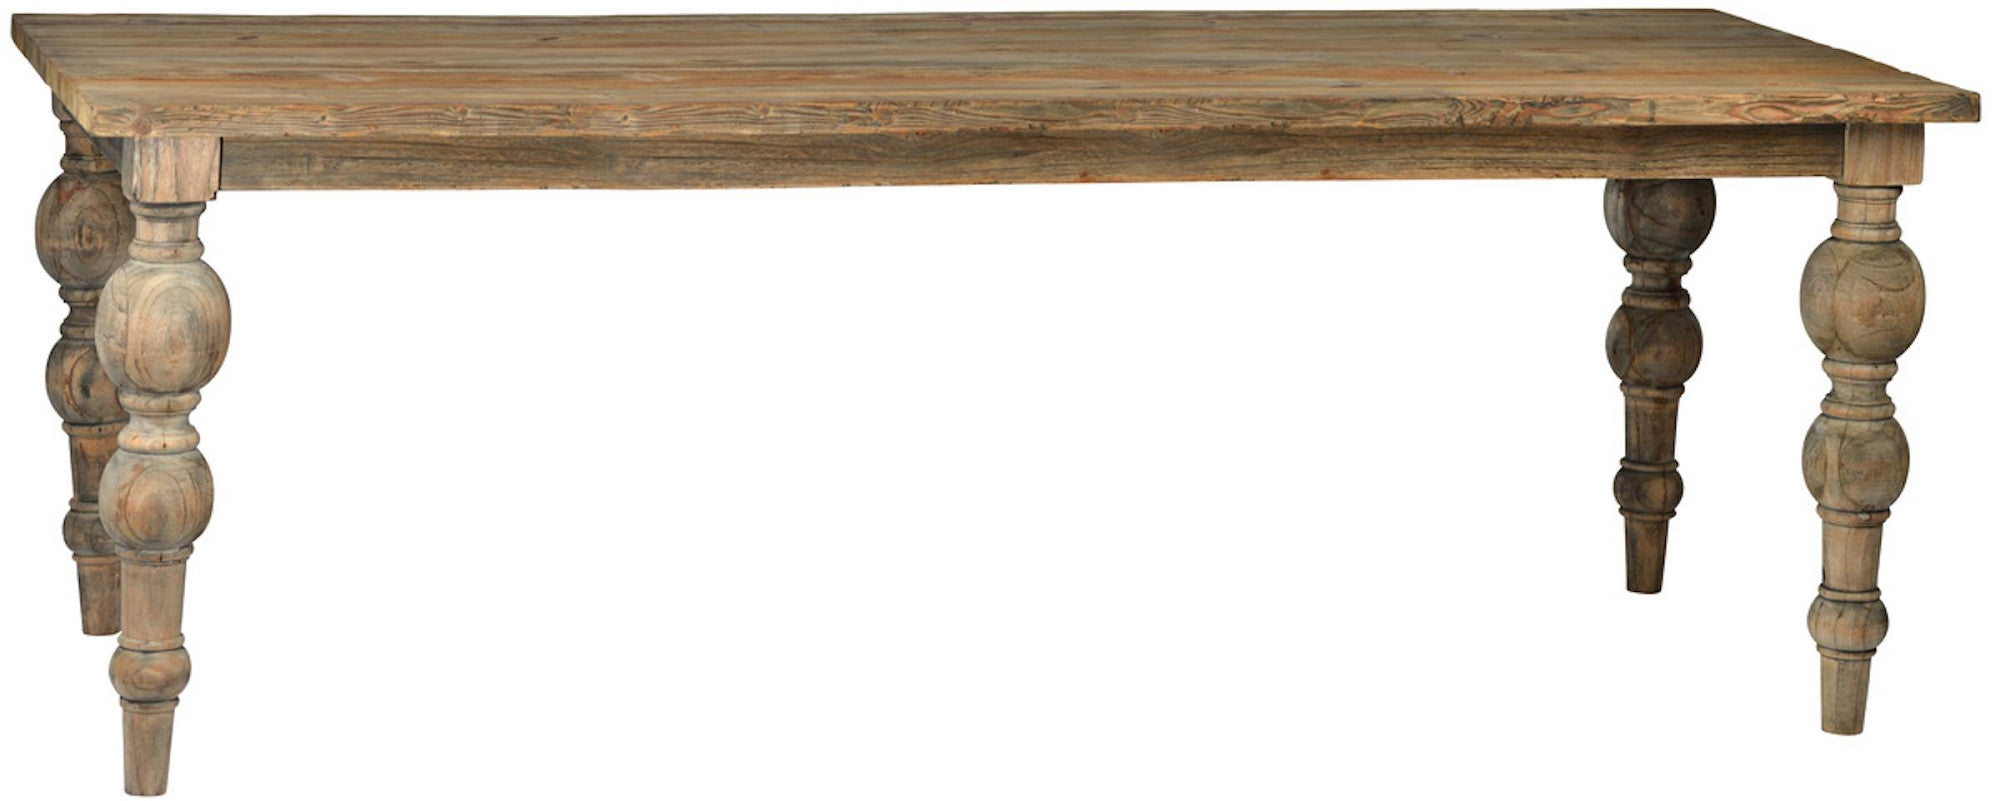 Savannah Reclaimed Wood Dining Table – Mortise & Tenon